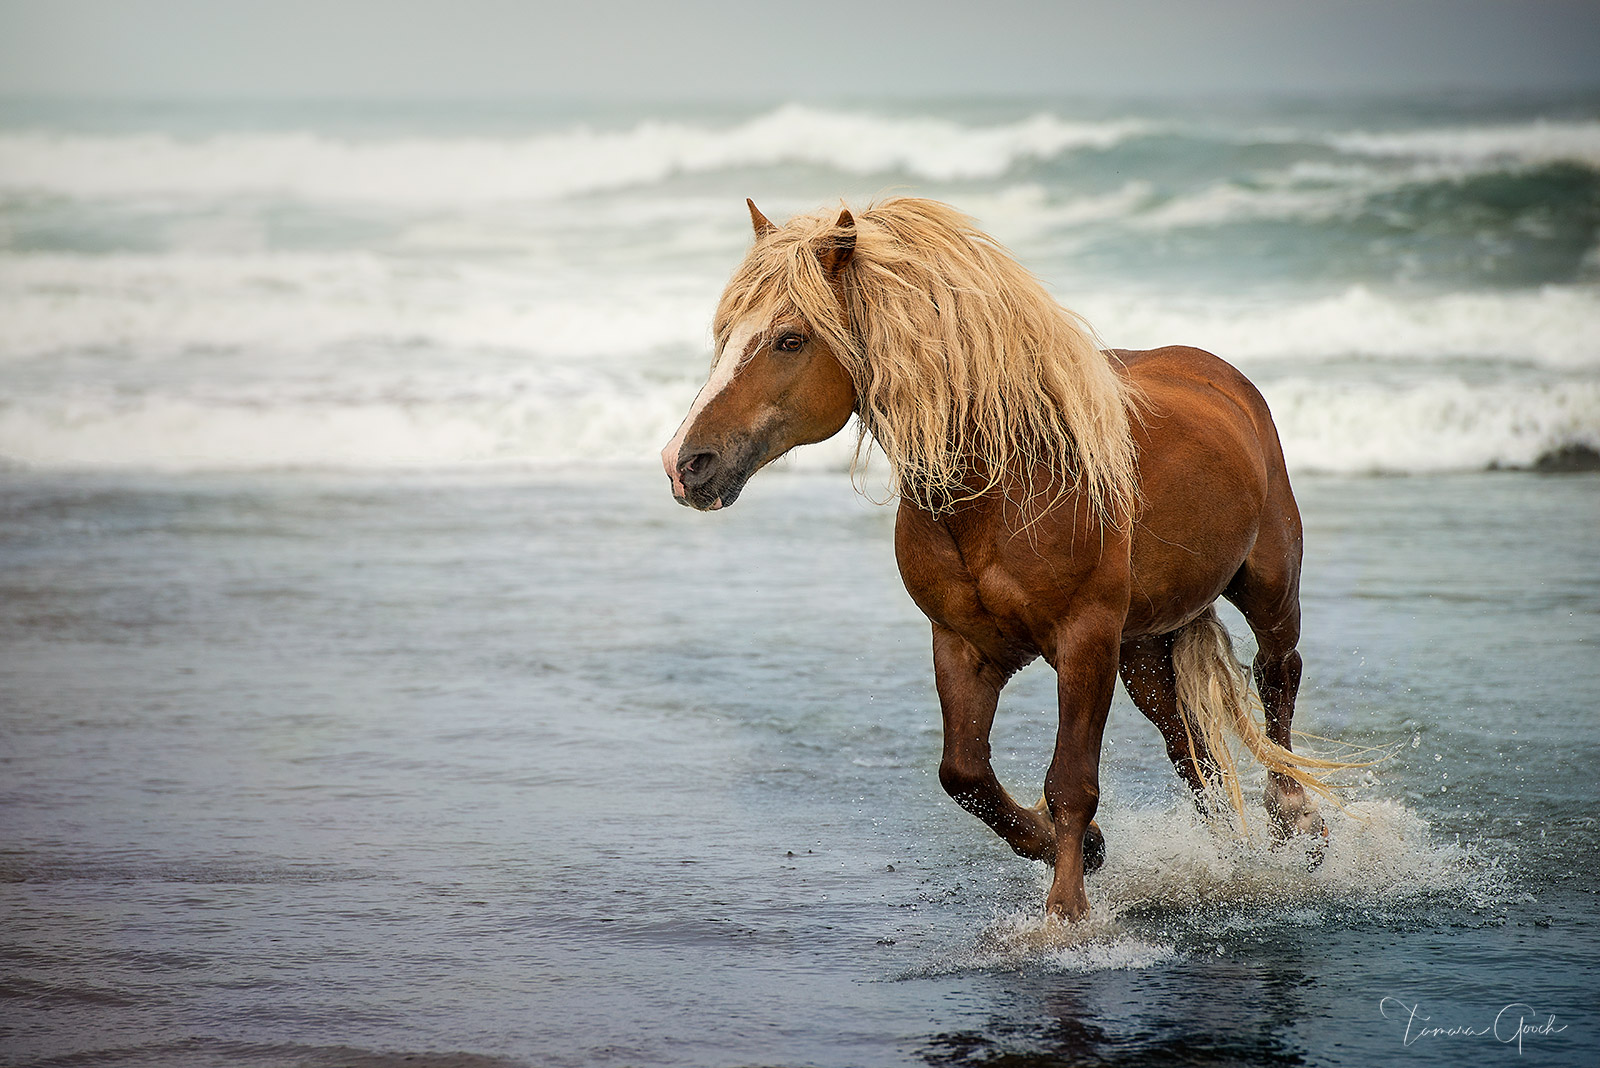 Haflingers Horse at the beach artwork for sale, print, metal, aluminum, canvas, Lumachrome TreLife Acrylic, worlds best, equestrian art, equestrian style, Haflinger, horse, equine, beach, ocean, surf,, photo